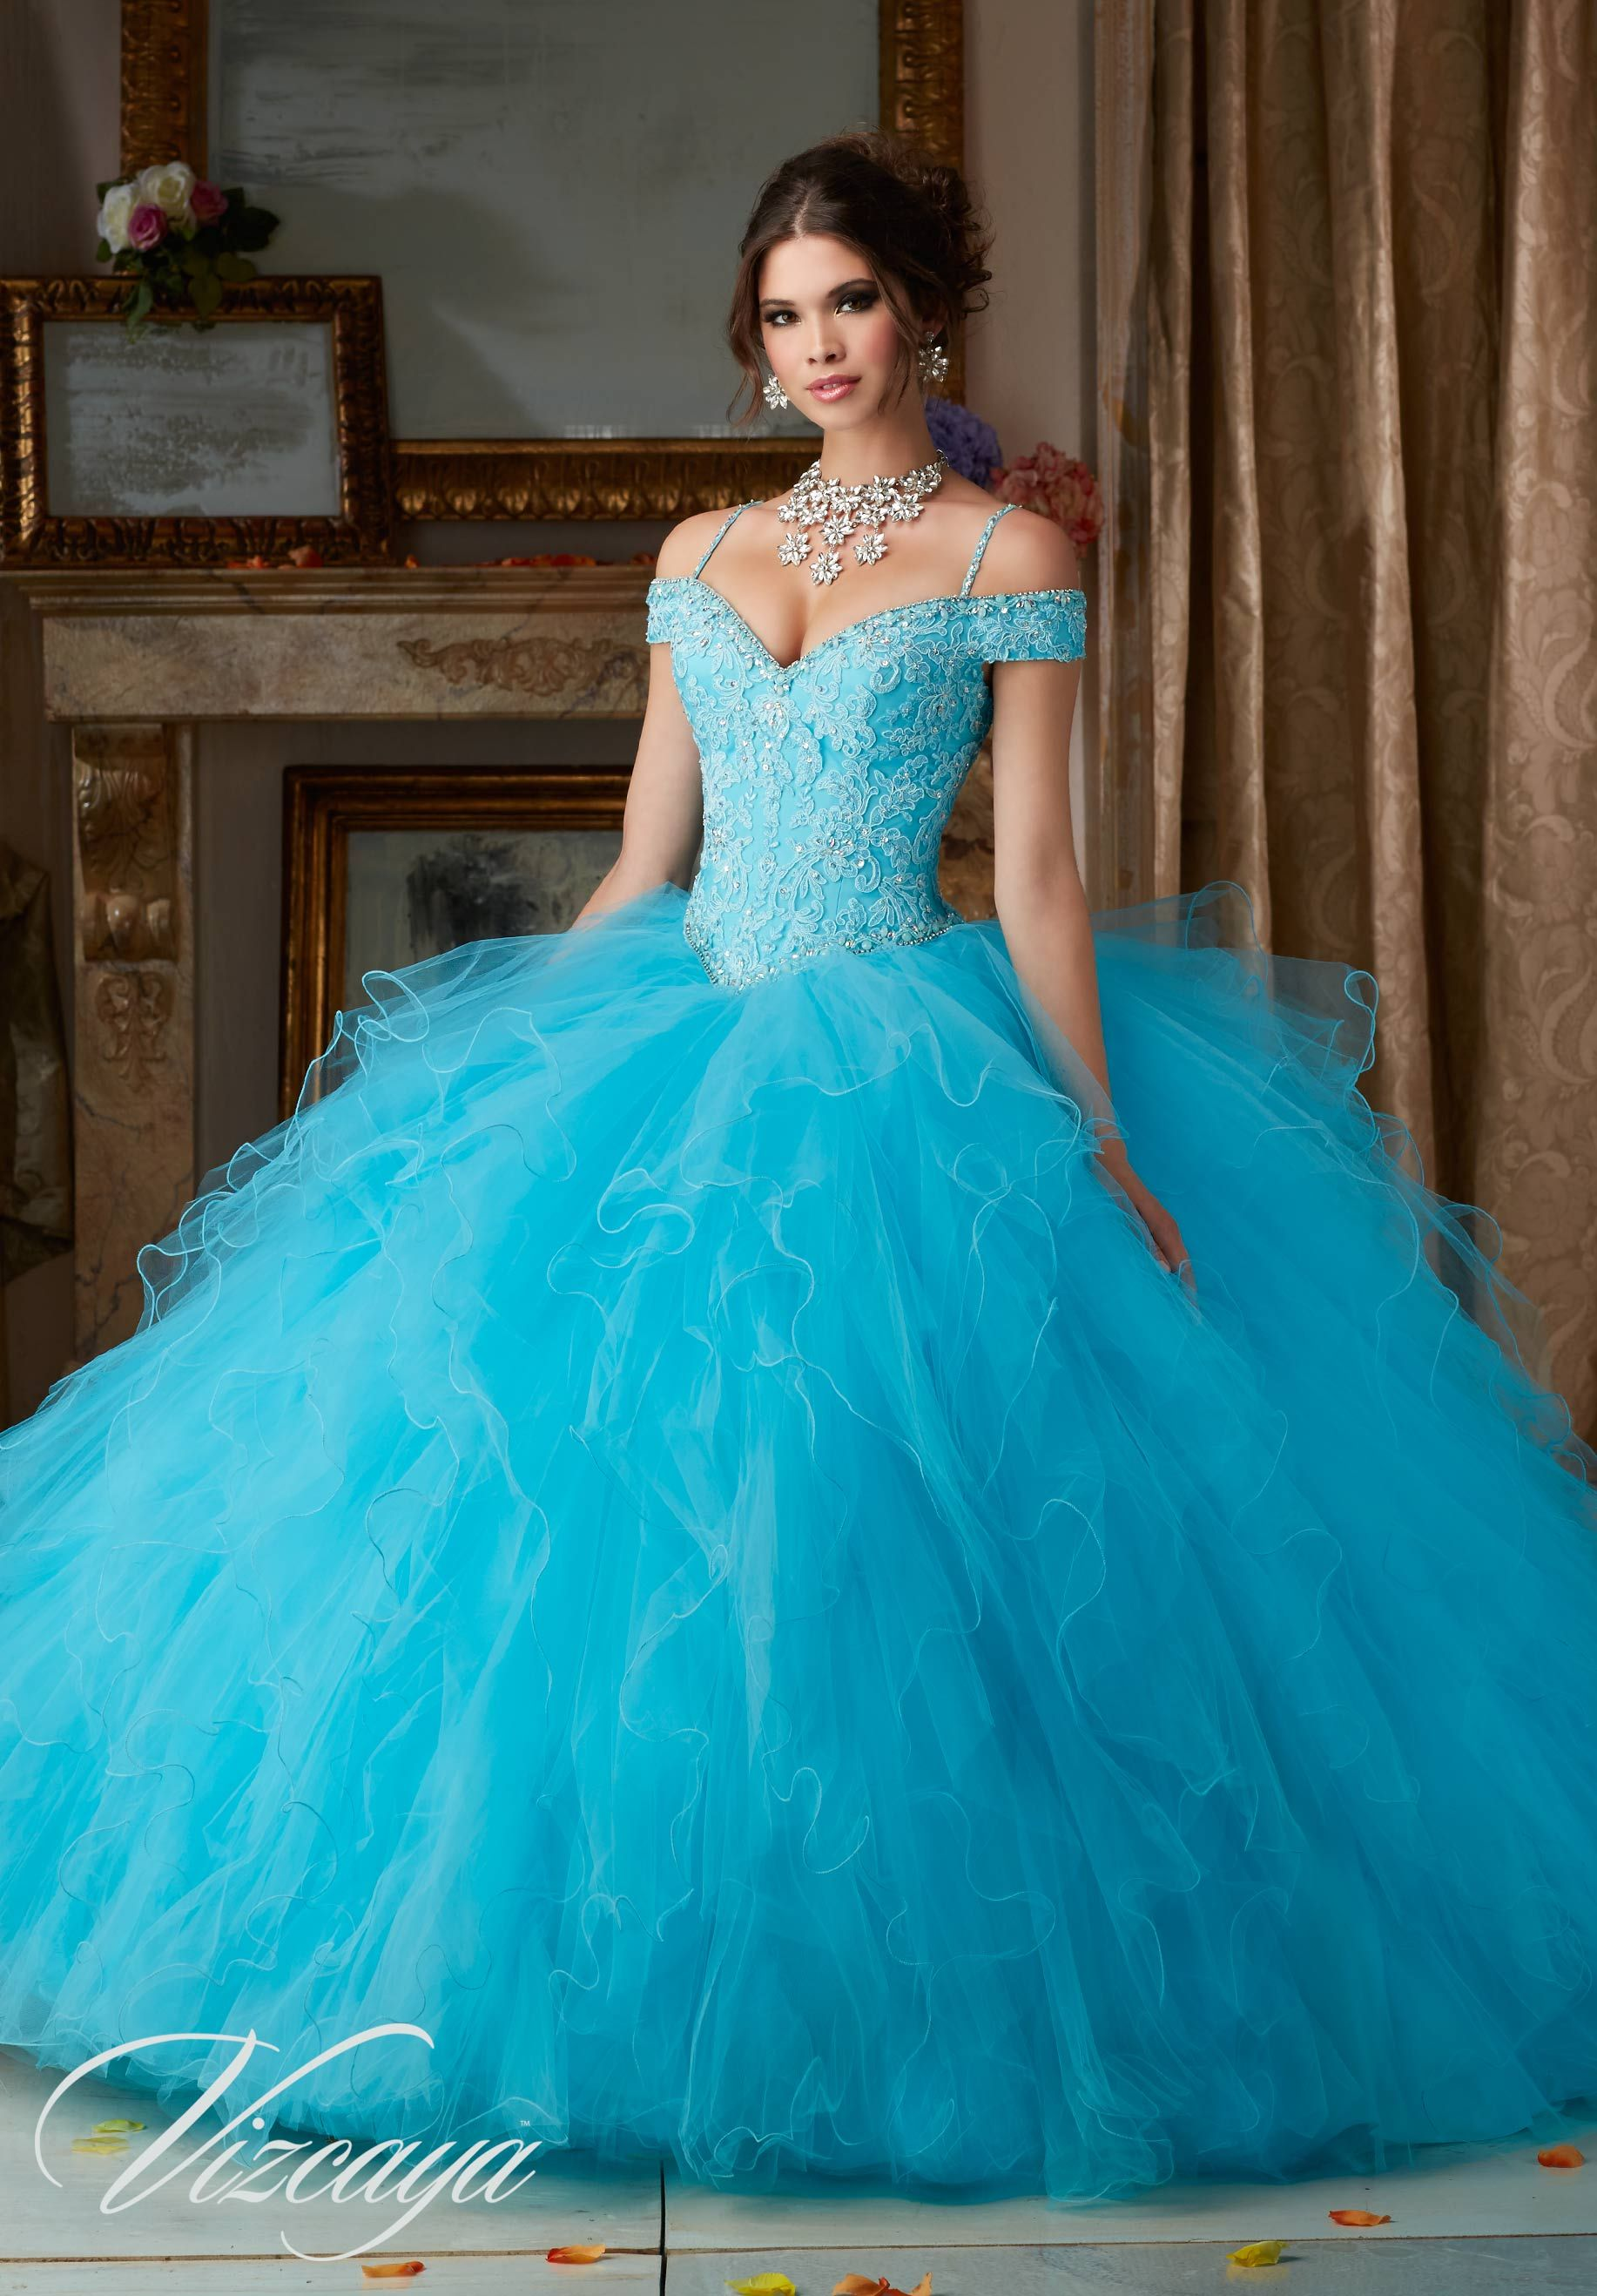 Blue dress quinceanera accessories